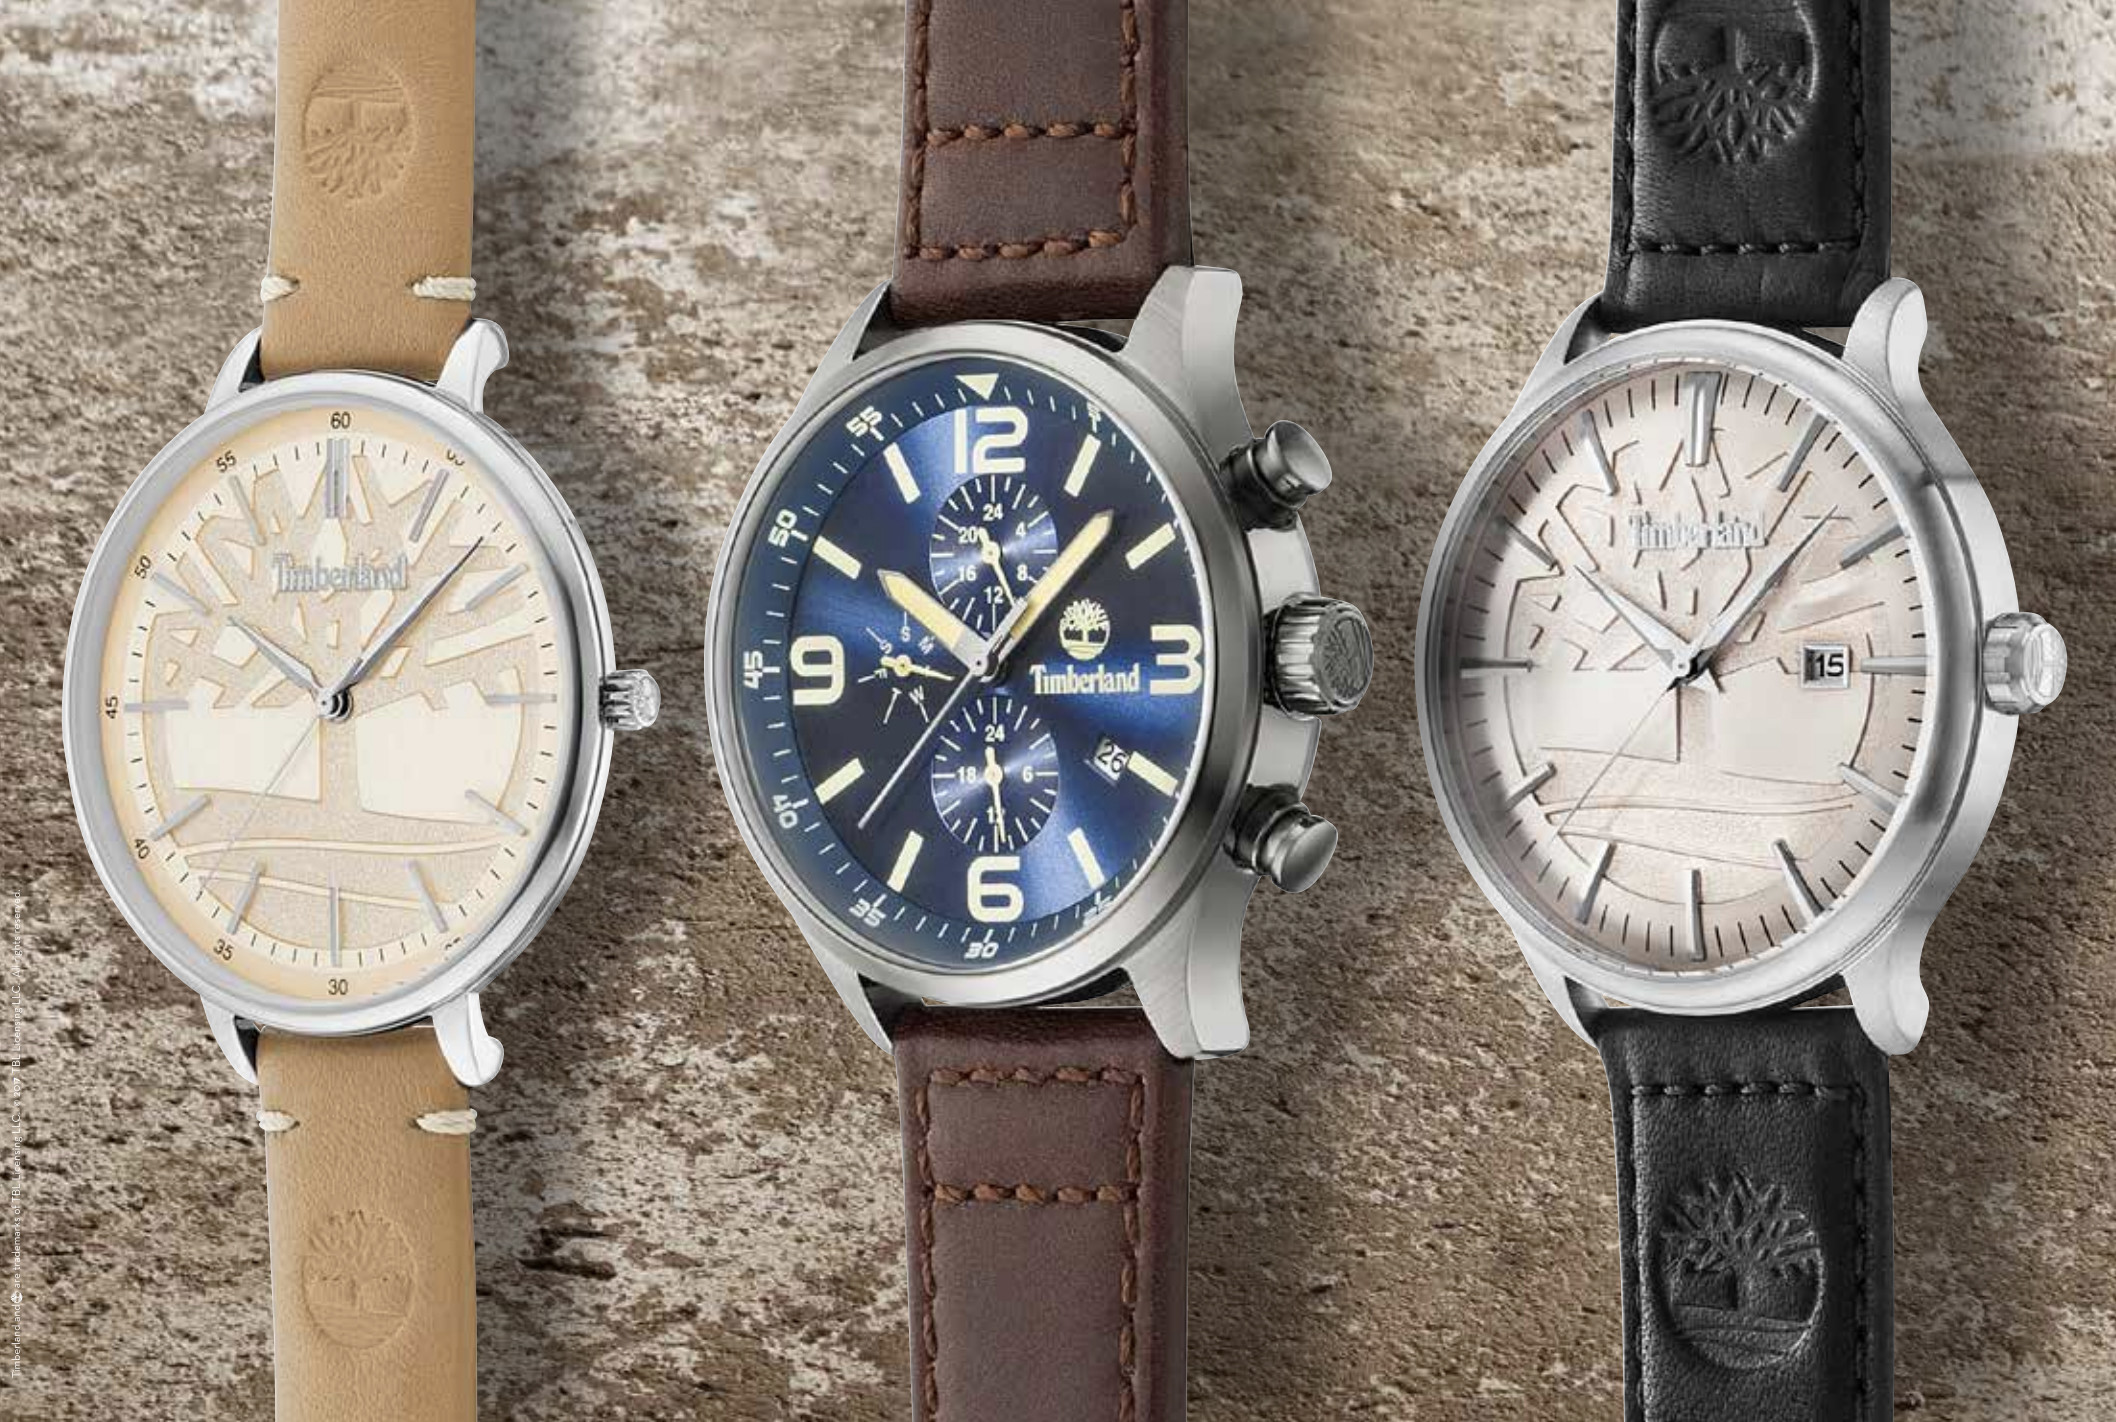 Xmas 2019 watches gifts